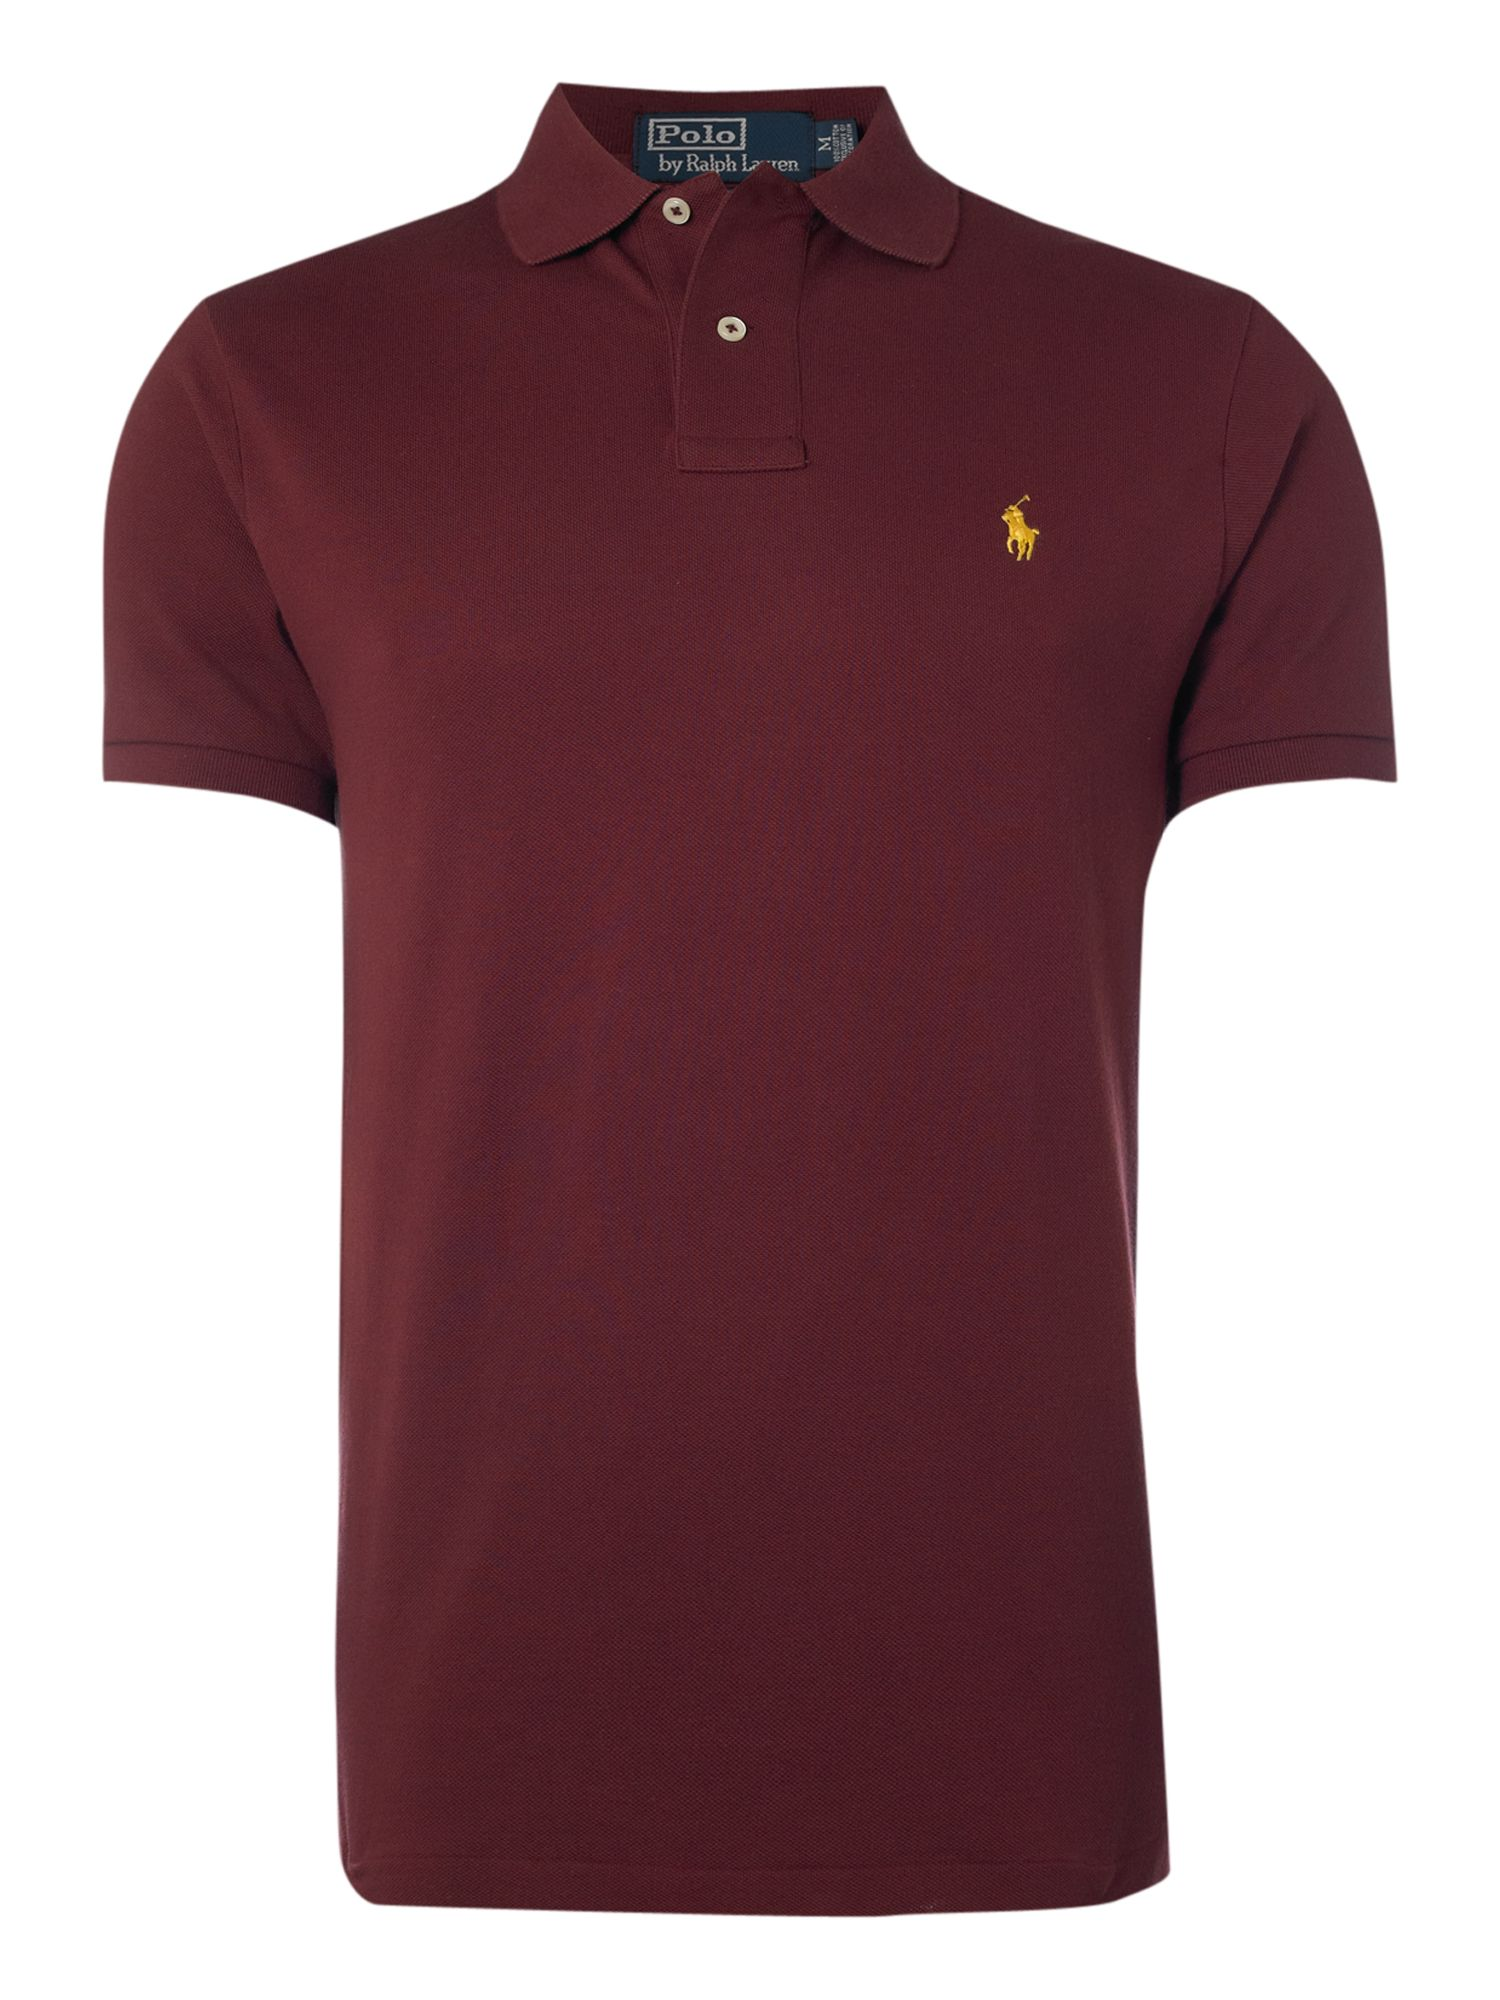 polo ralph lauren slim fit mesh polo shirt in red for men burgundy lyst. Black Bedroom Furniture Sets. Home Design Ideas